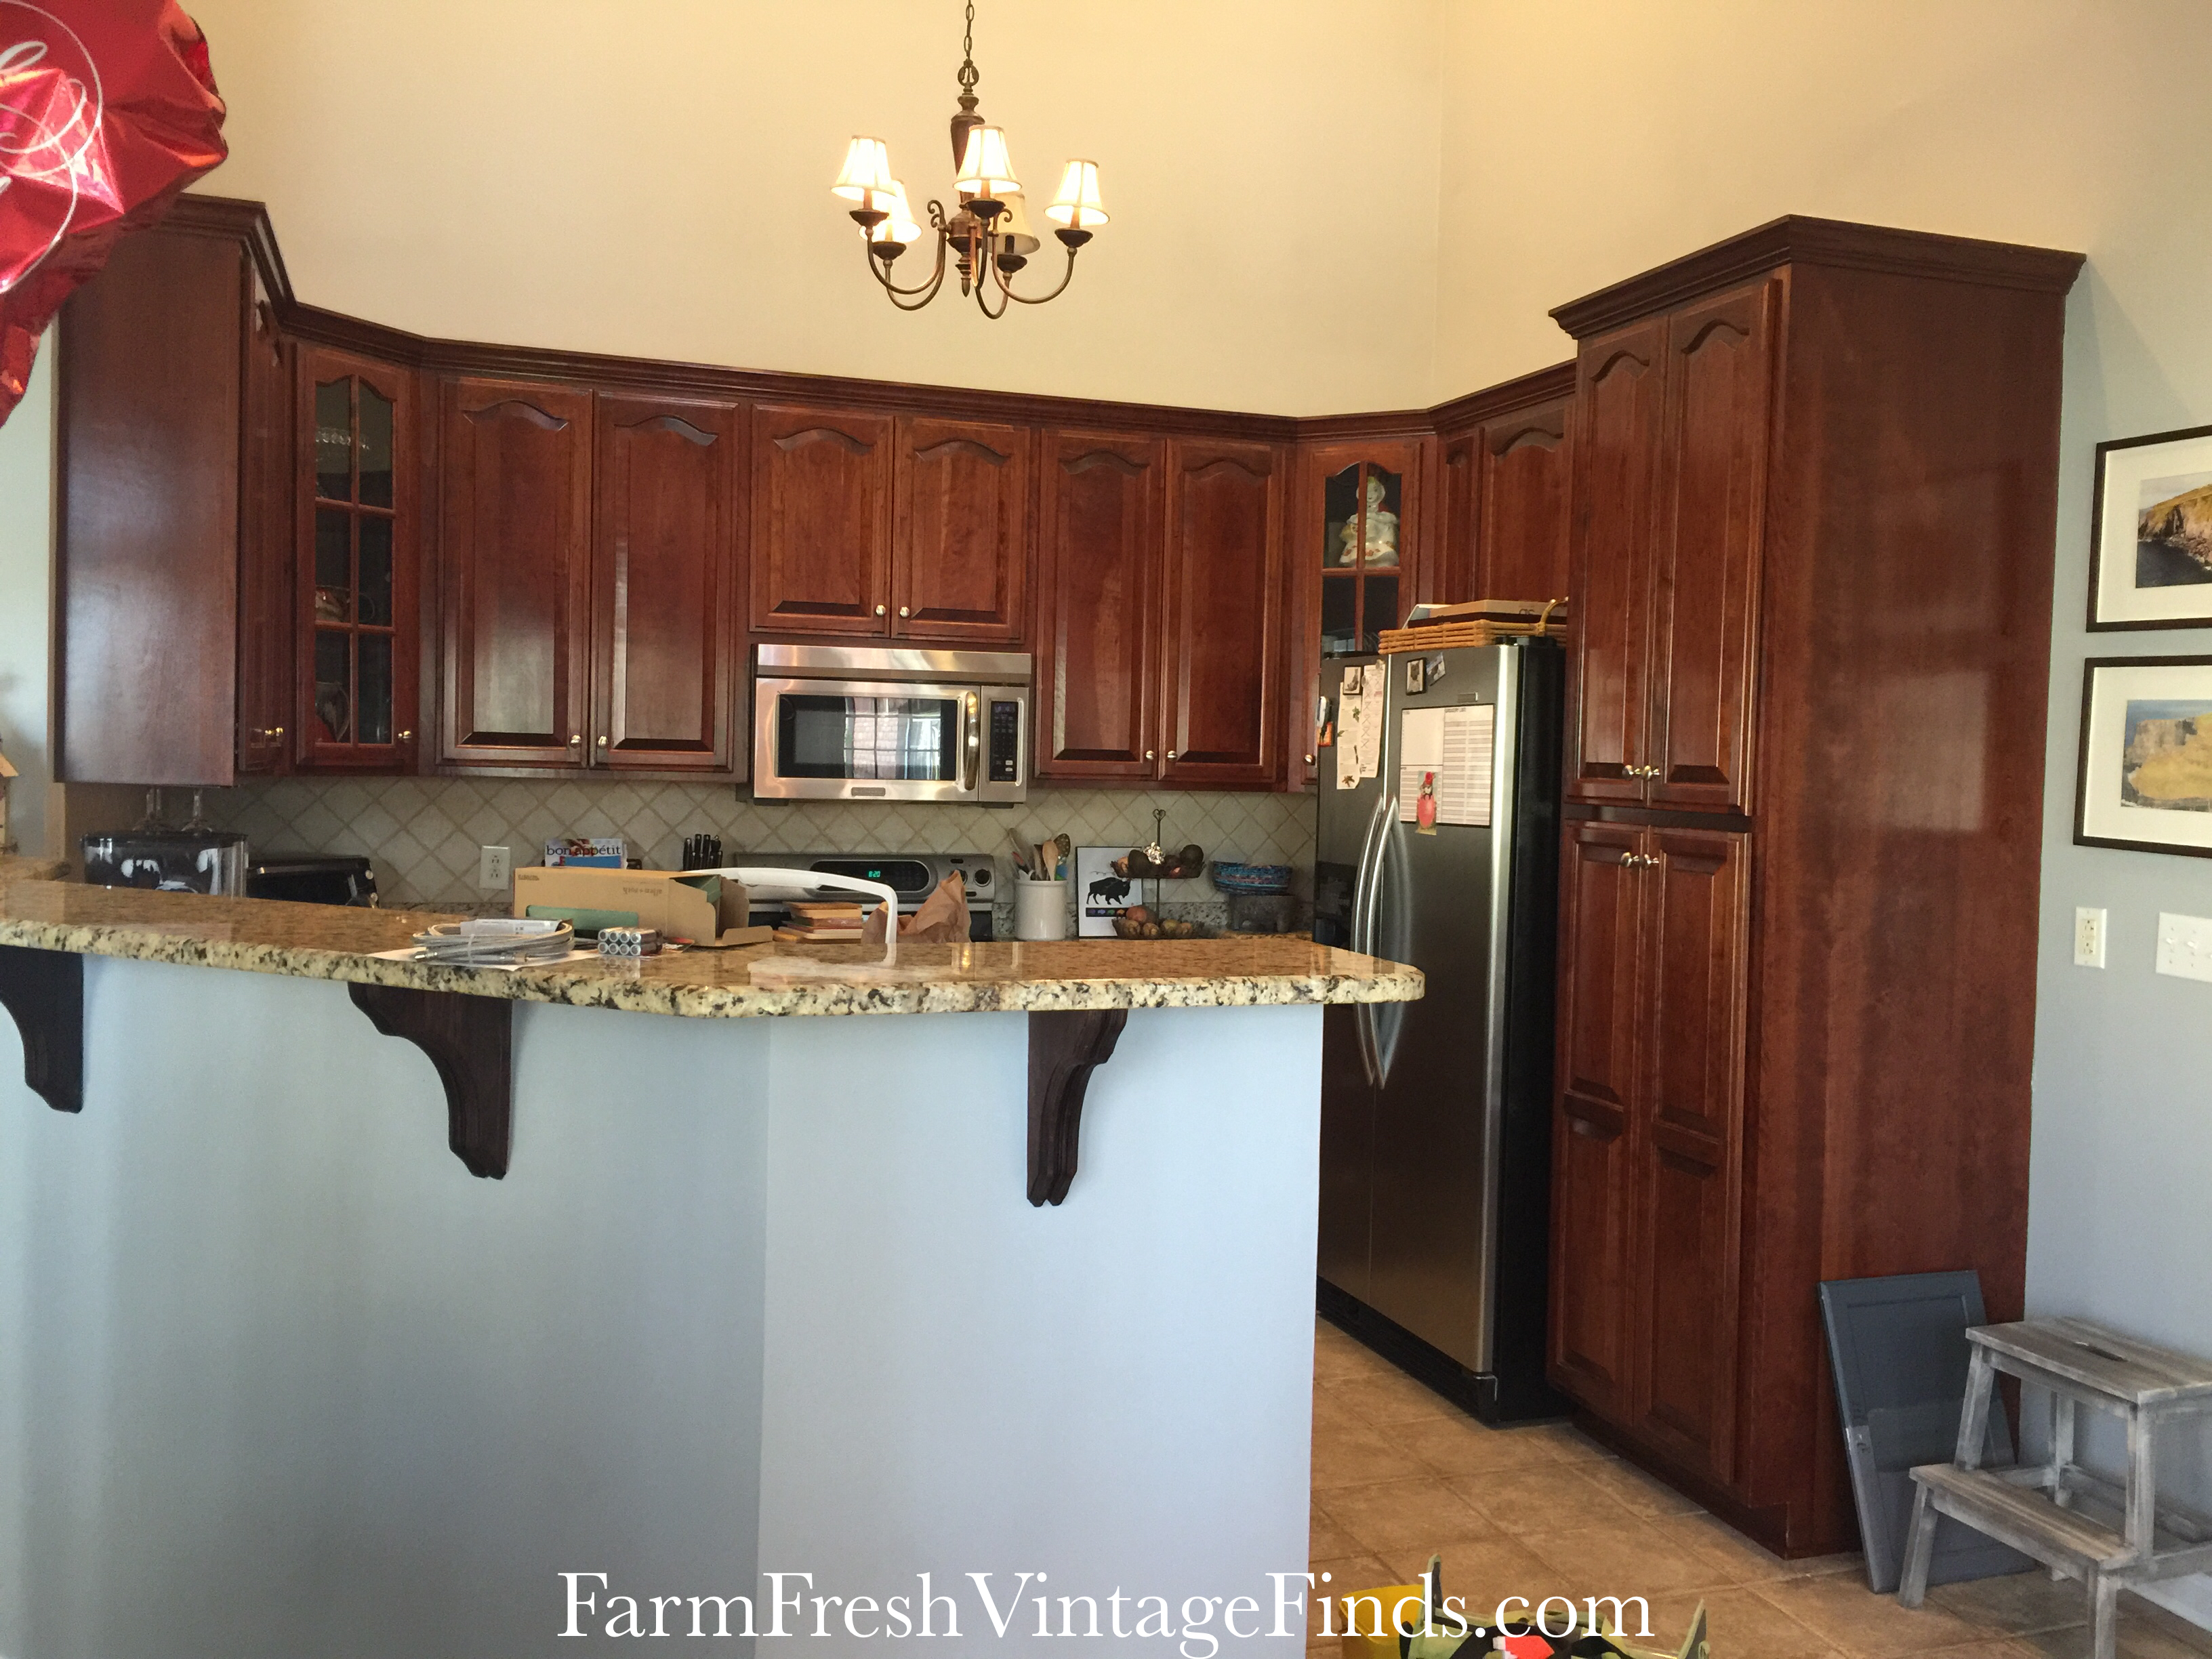 Painting Kitchen Cabinets With General Finishes Milk Paint Farm - What paint to use on kitchen cabinets